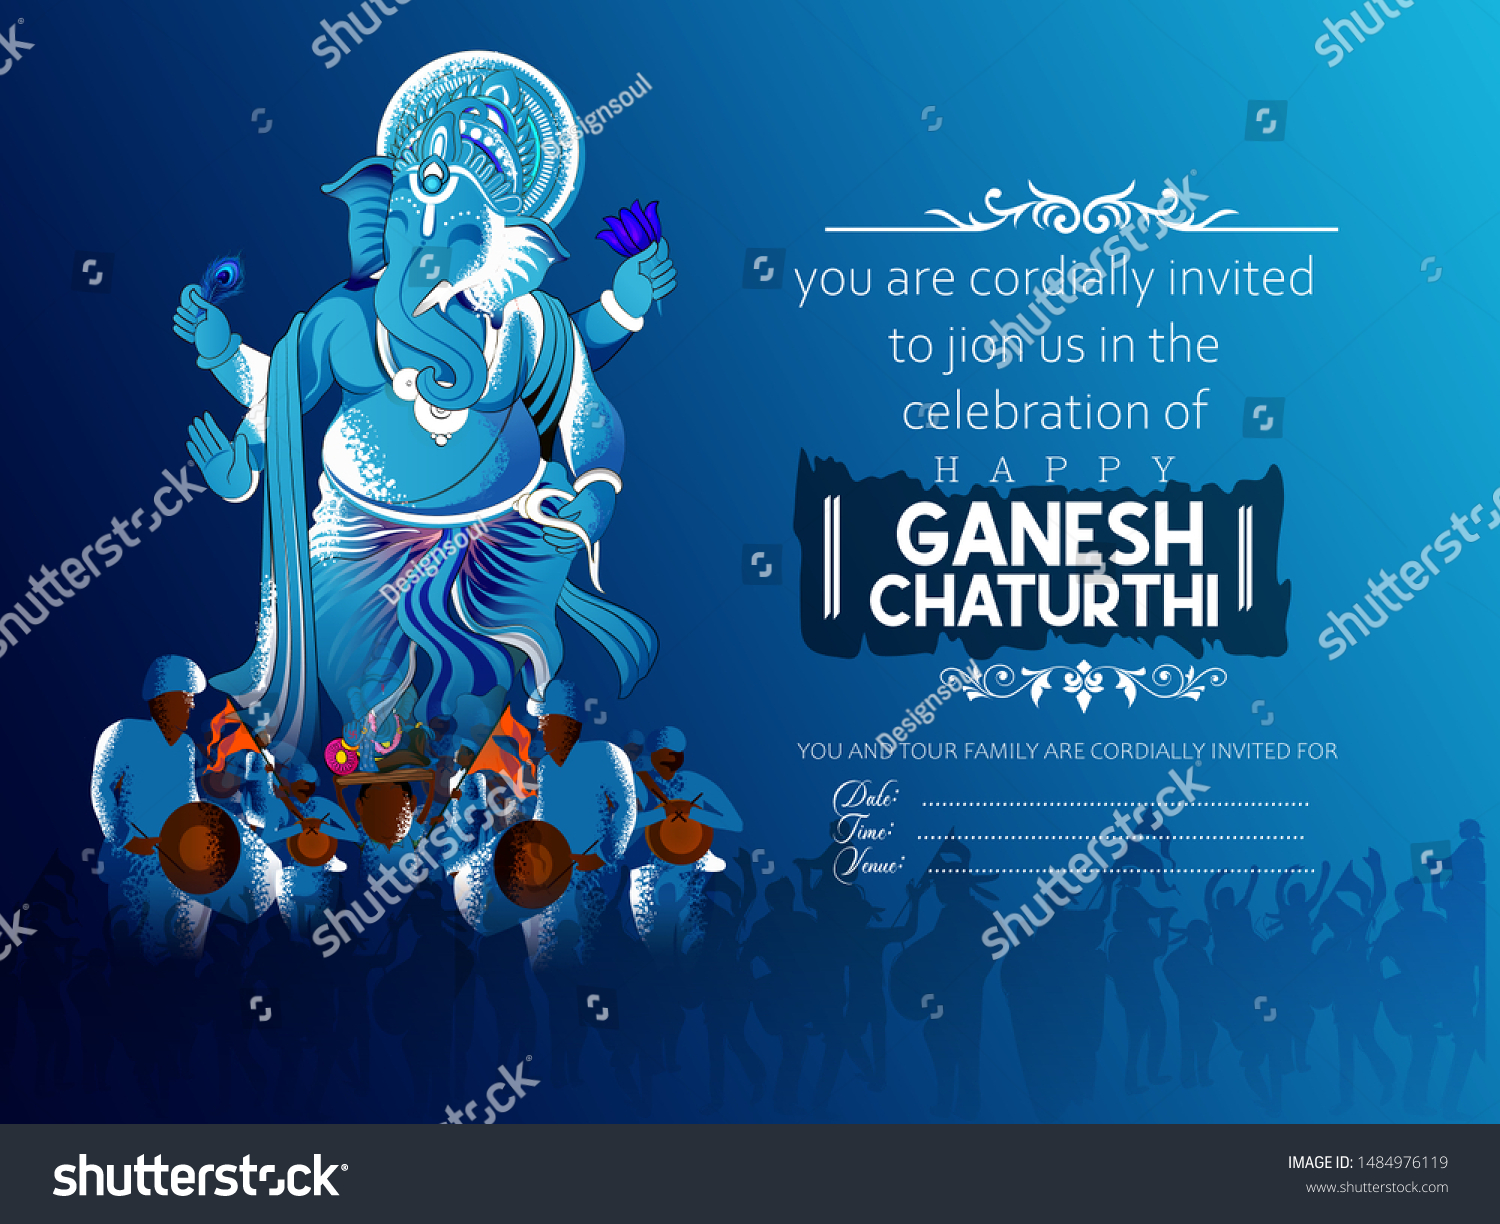 illustration of Lord Ganpati on Ganesh Chaturthi, card poster invitation card